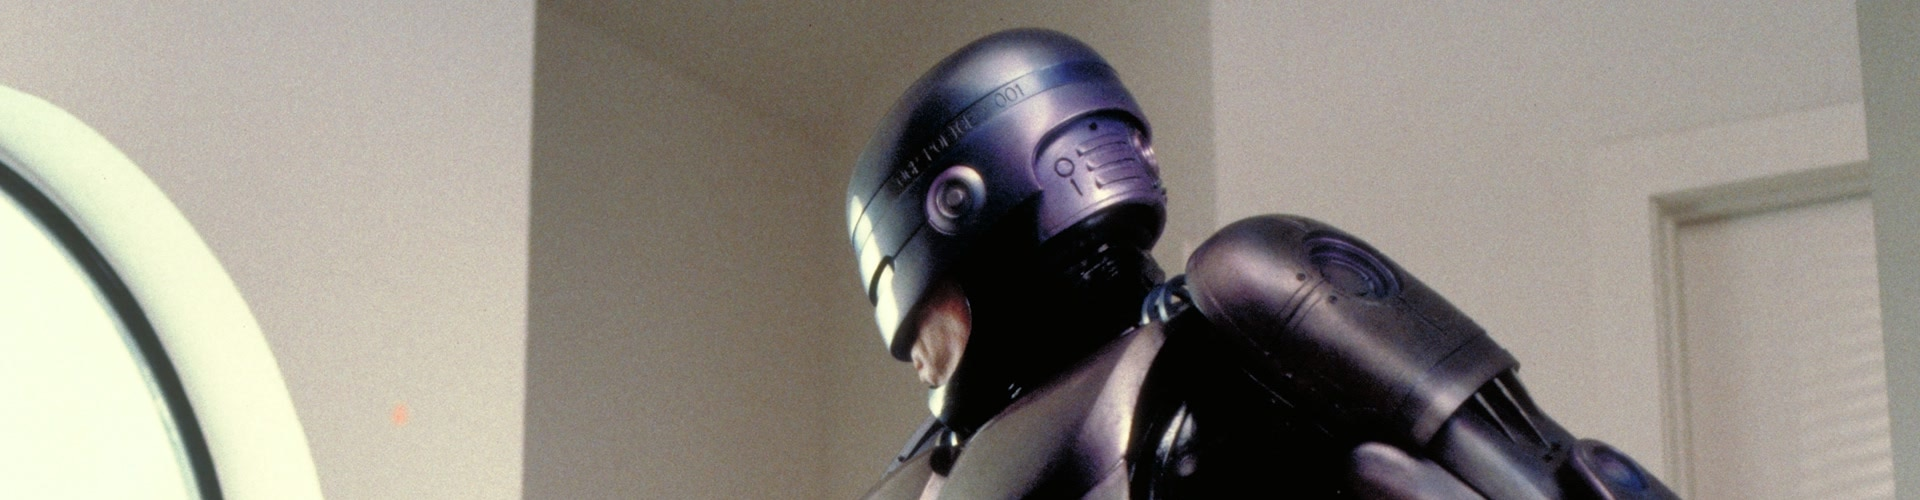 Watch Robocop (1987) Online